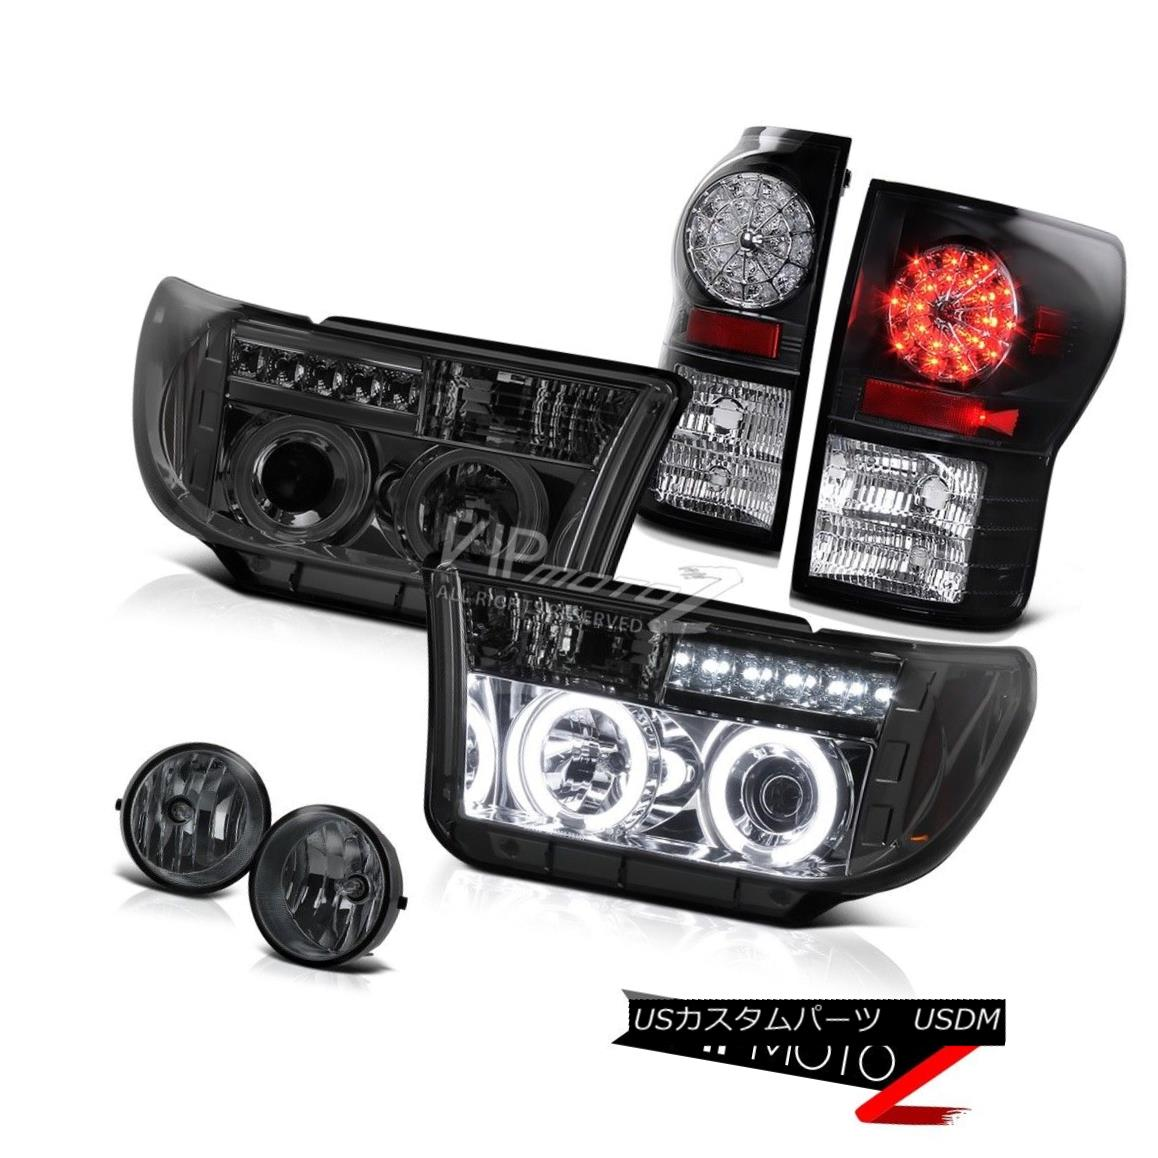 ヘッドライト CCFL Halo Projector Headlight+Led Tail Light+Fog Lamp Toyota 2007-13 Tundra CCFL Haloプロジェクターヘッドライト+ Ledテールライト+ FogランプToyota 2007-13 Tundra